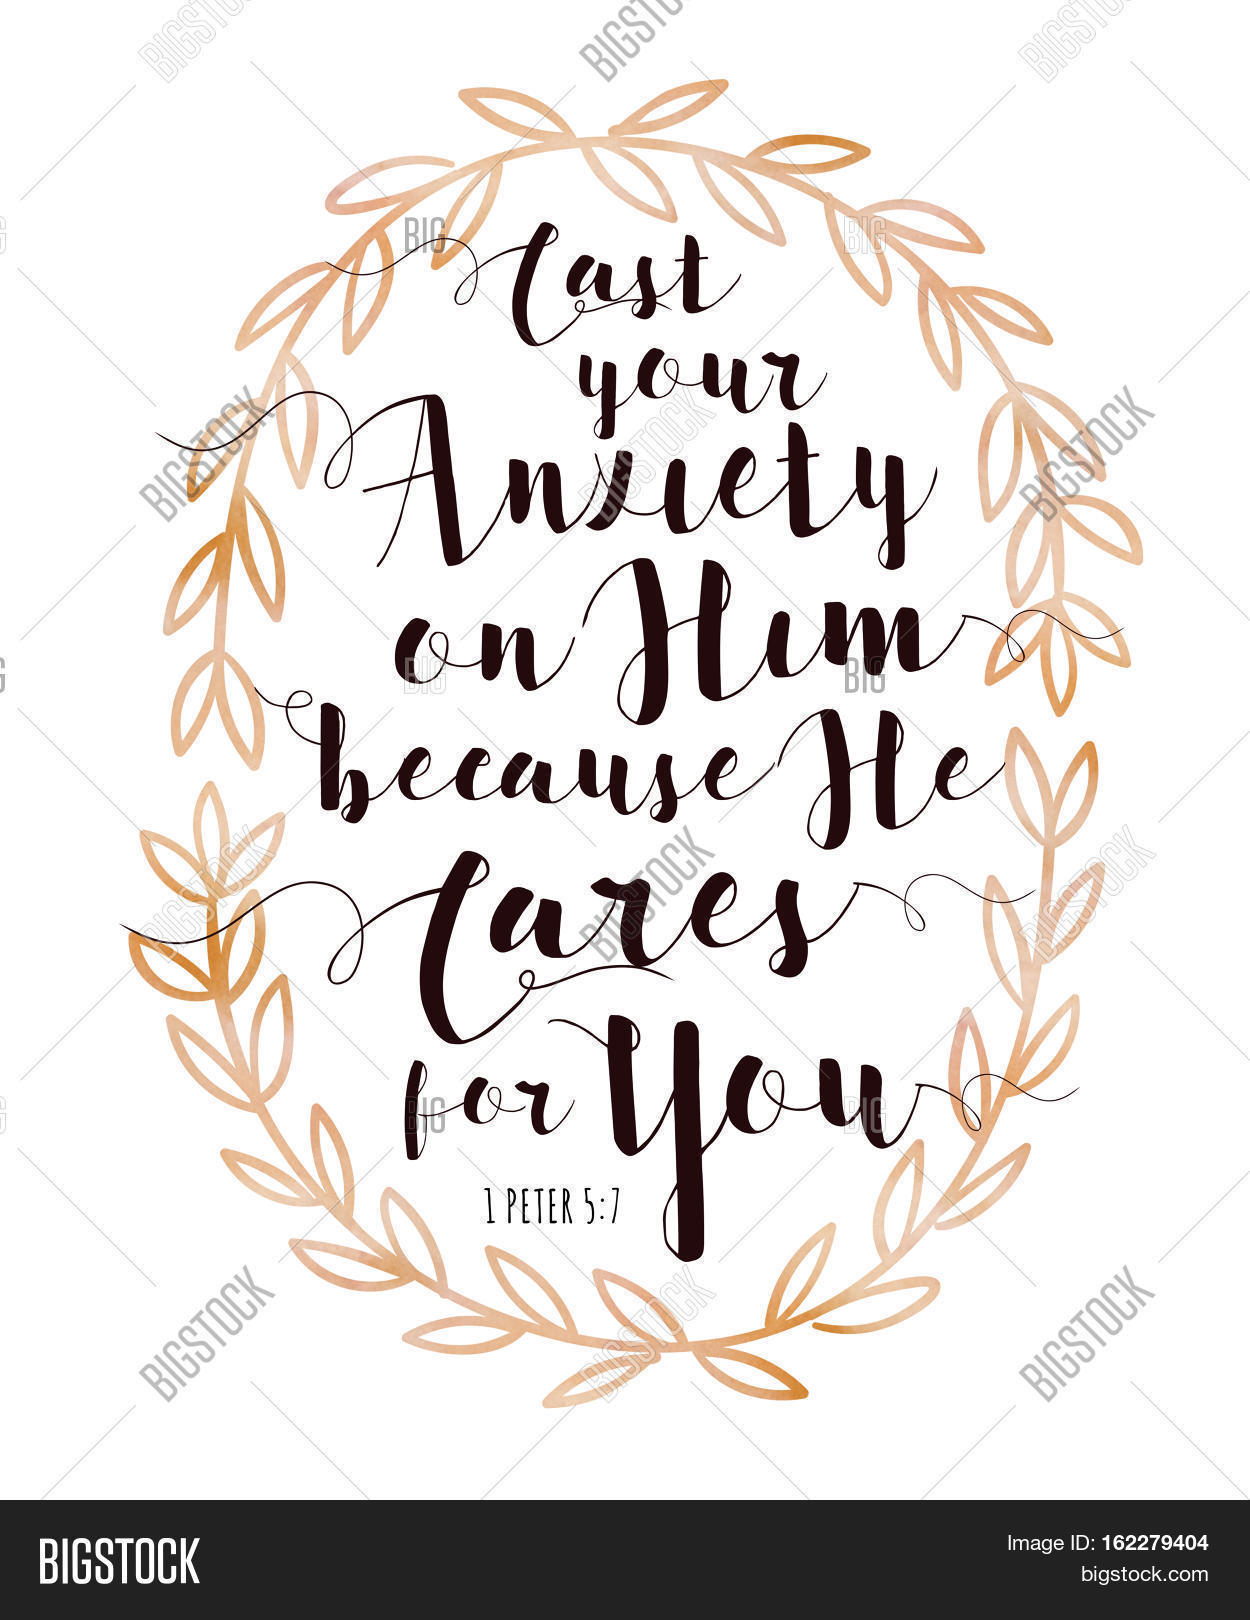 photograph regarding Free Printable Bible Verses to Frame named Solid Your Nervousness Upon Picture Photograph (Absolutely free Demo) Bigstock